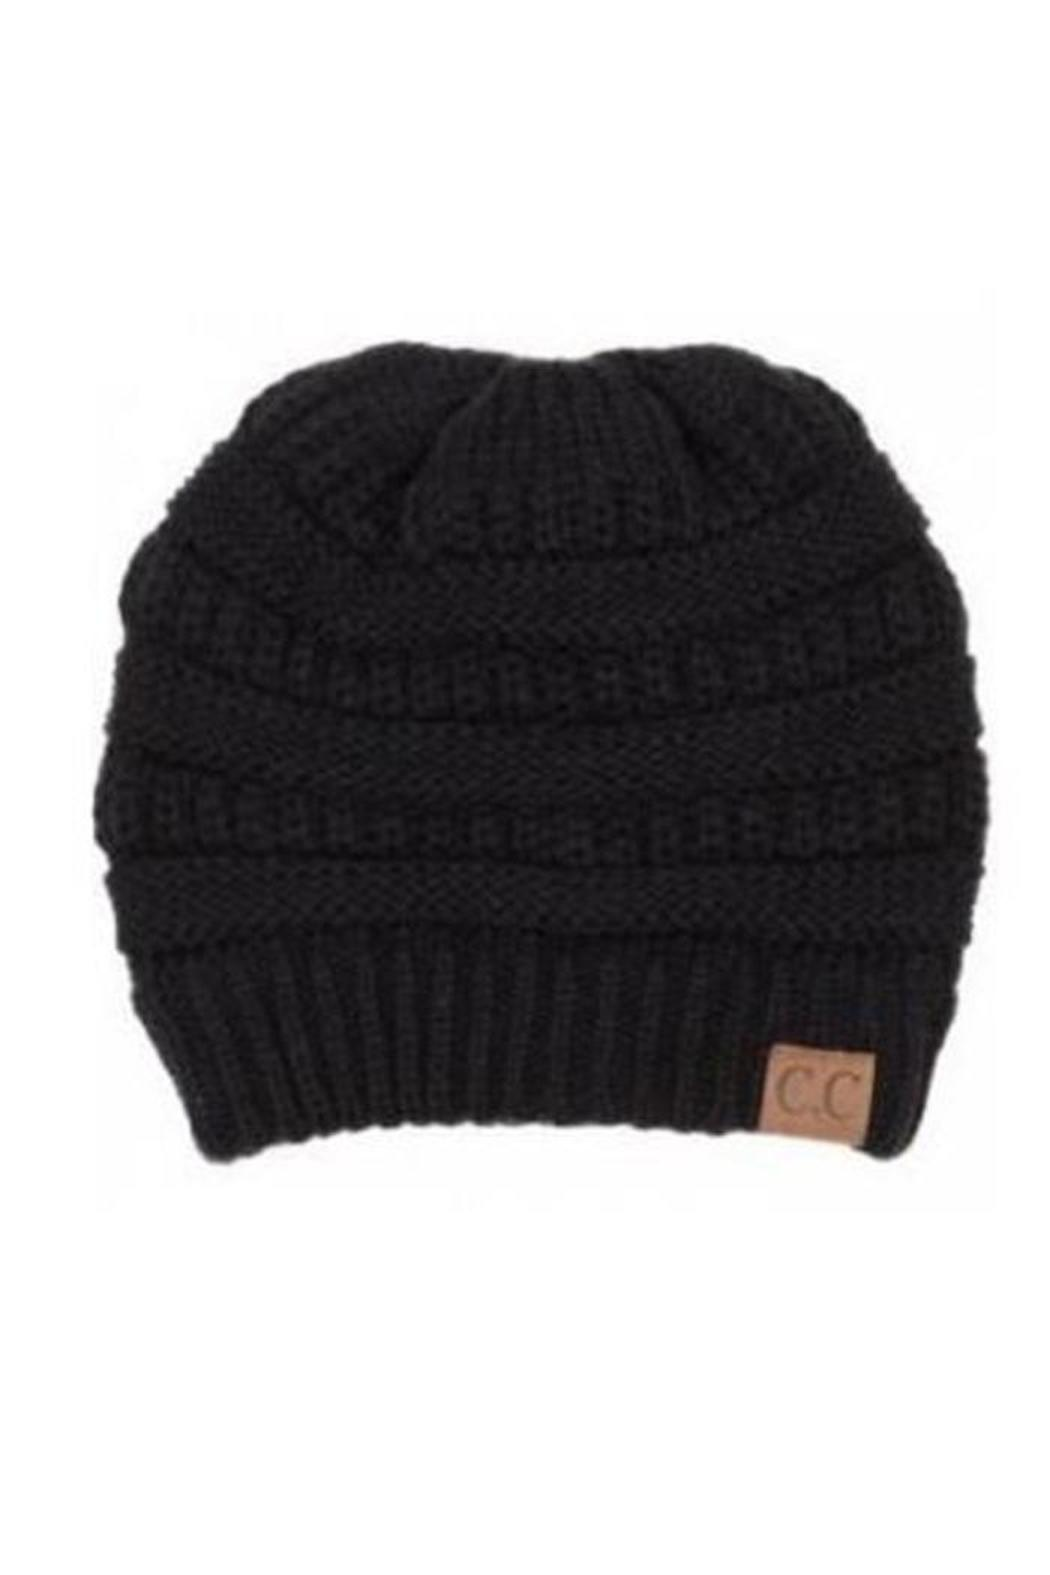 00de4c65aea C.C Beanie Ribbed Colored Beanie from Minneapolis by StyleTrolley ...